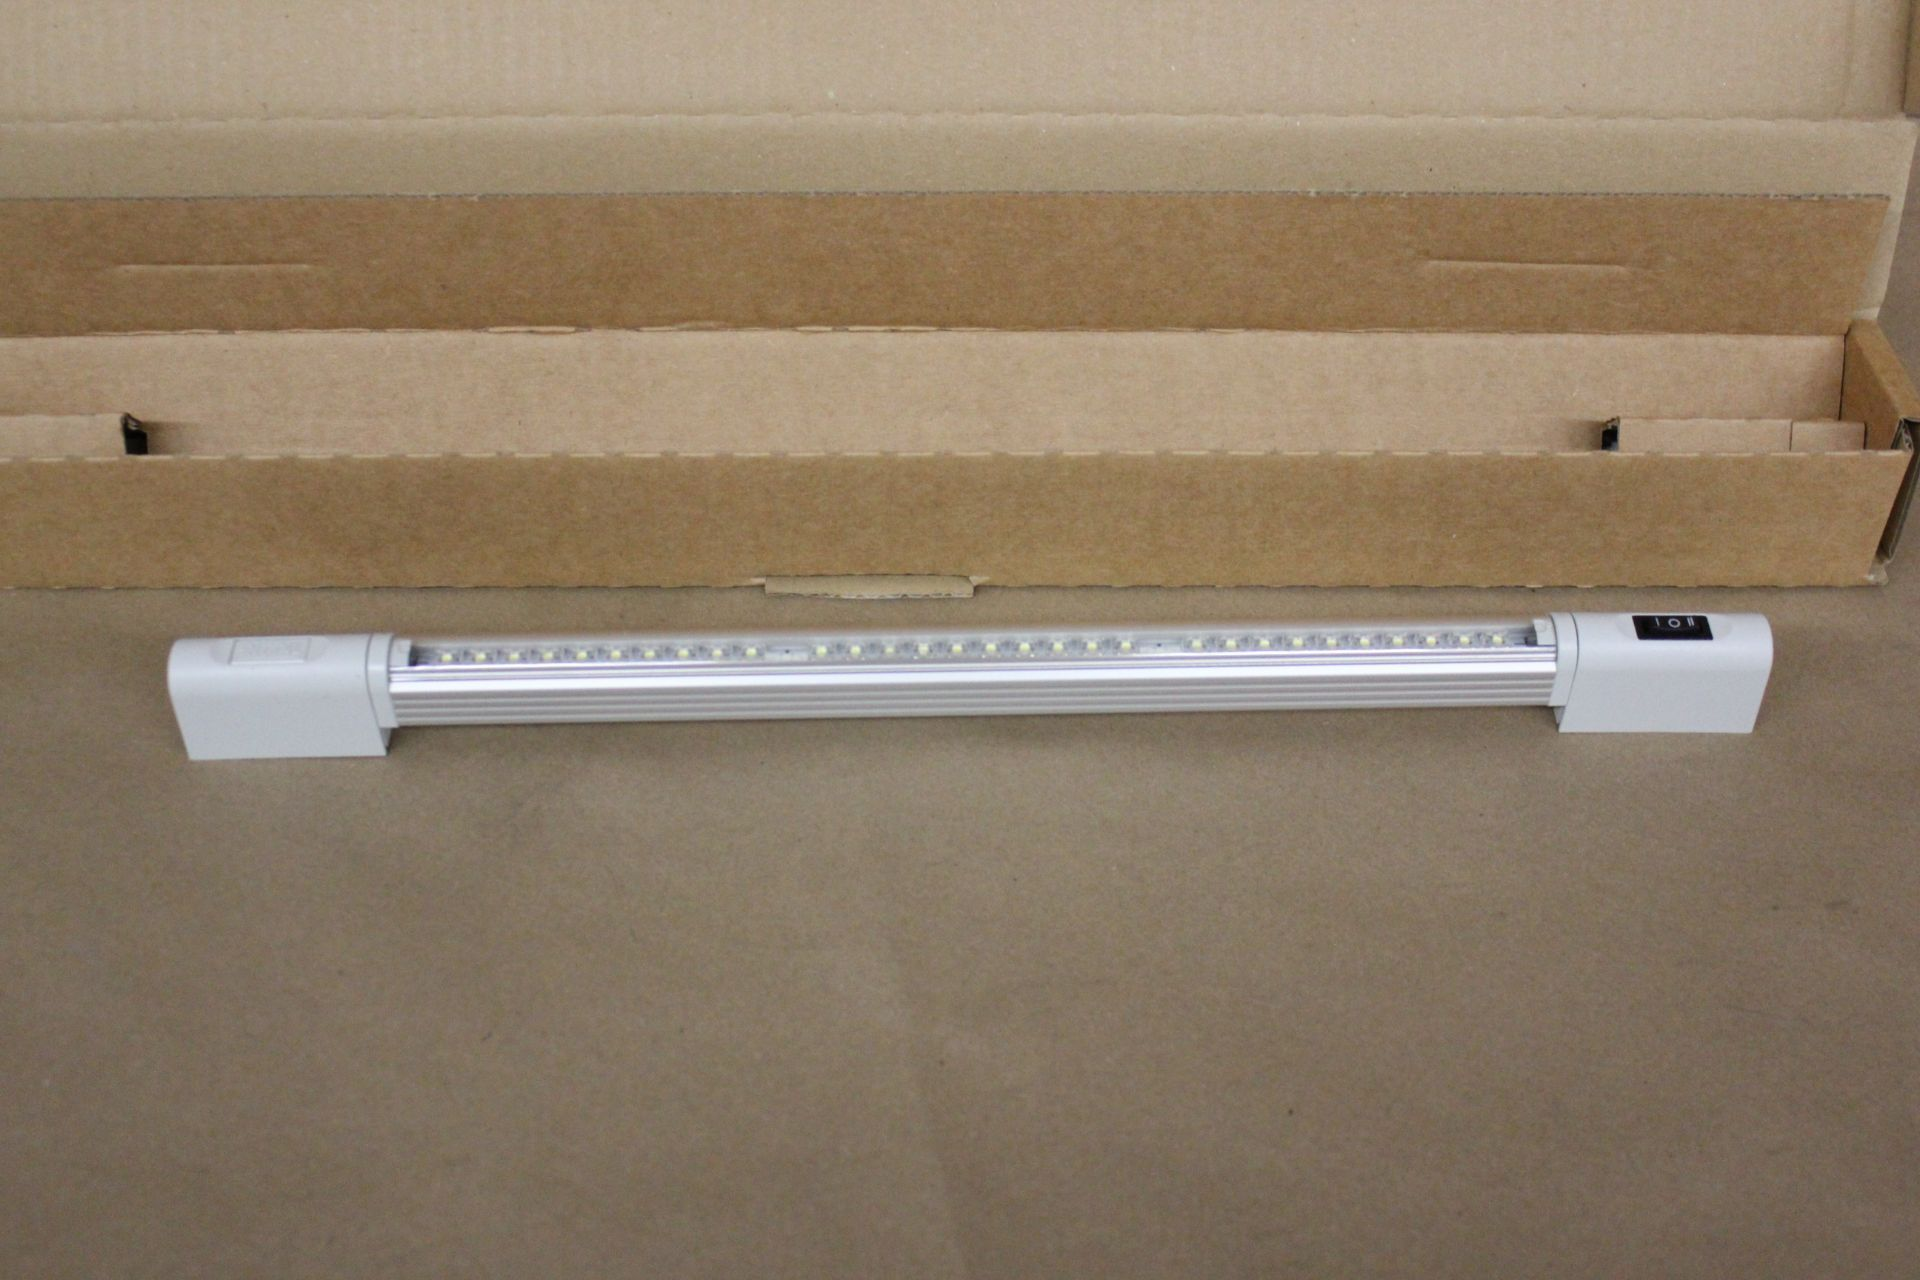 NEW RITTAL CABINET LED COMPACT LIGHT SYSTEM - Image 4 of 5